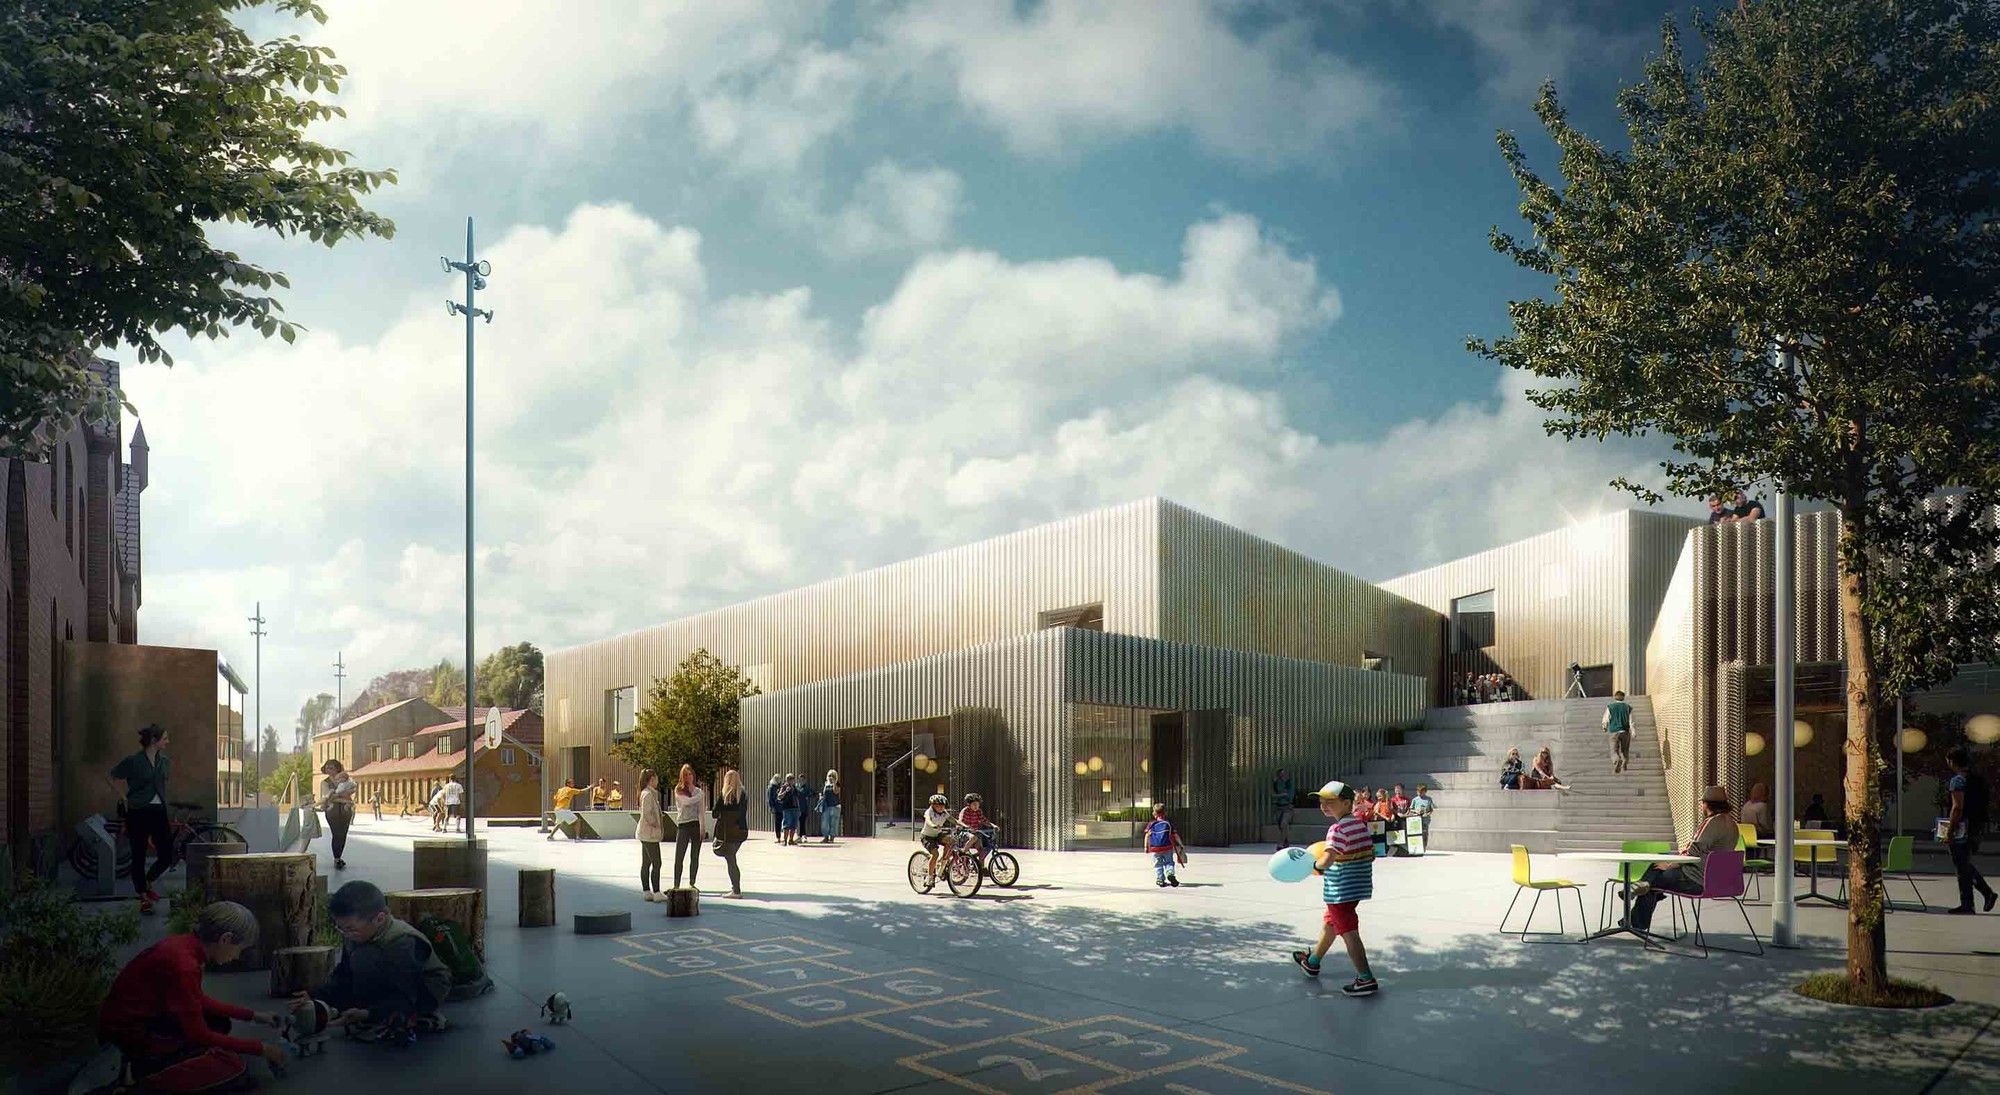 Future projects education winner: The Urban School in Elsinore, Denmark by EFFEKT